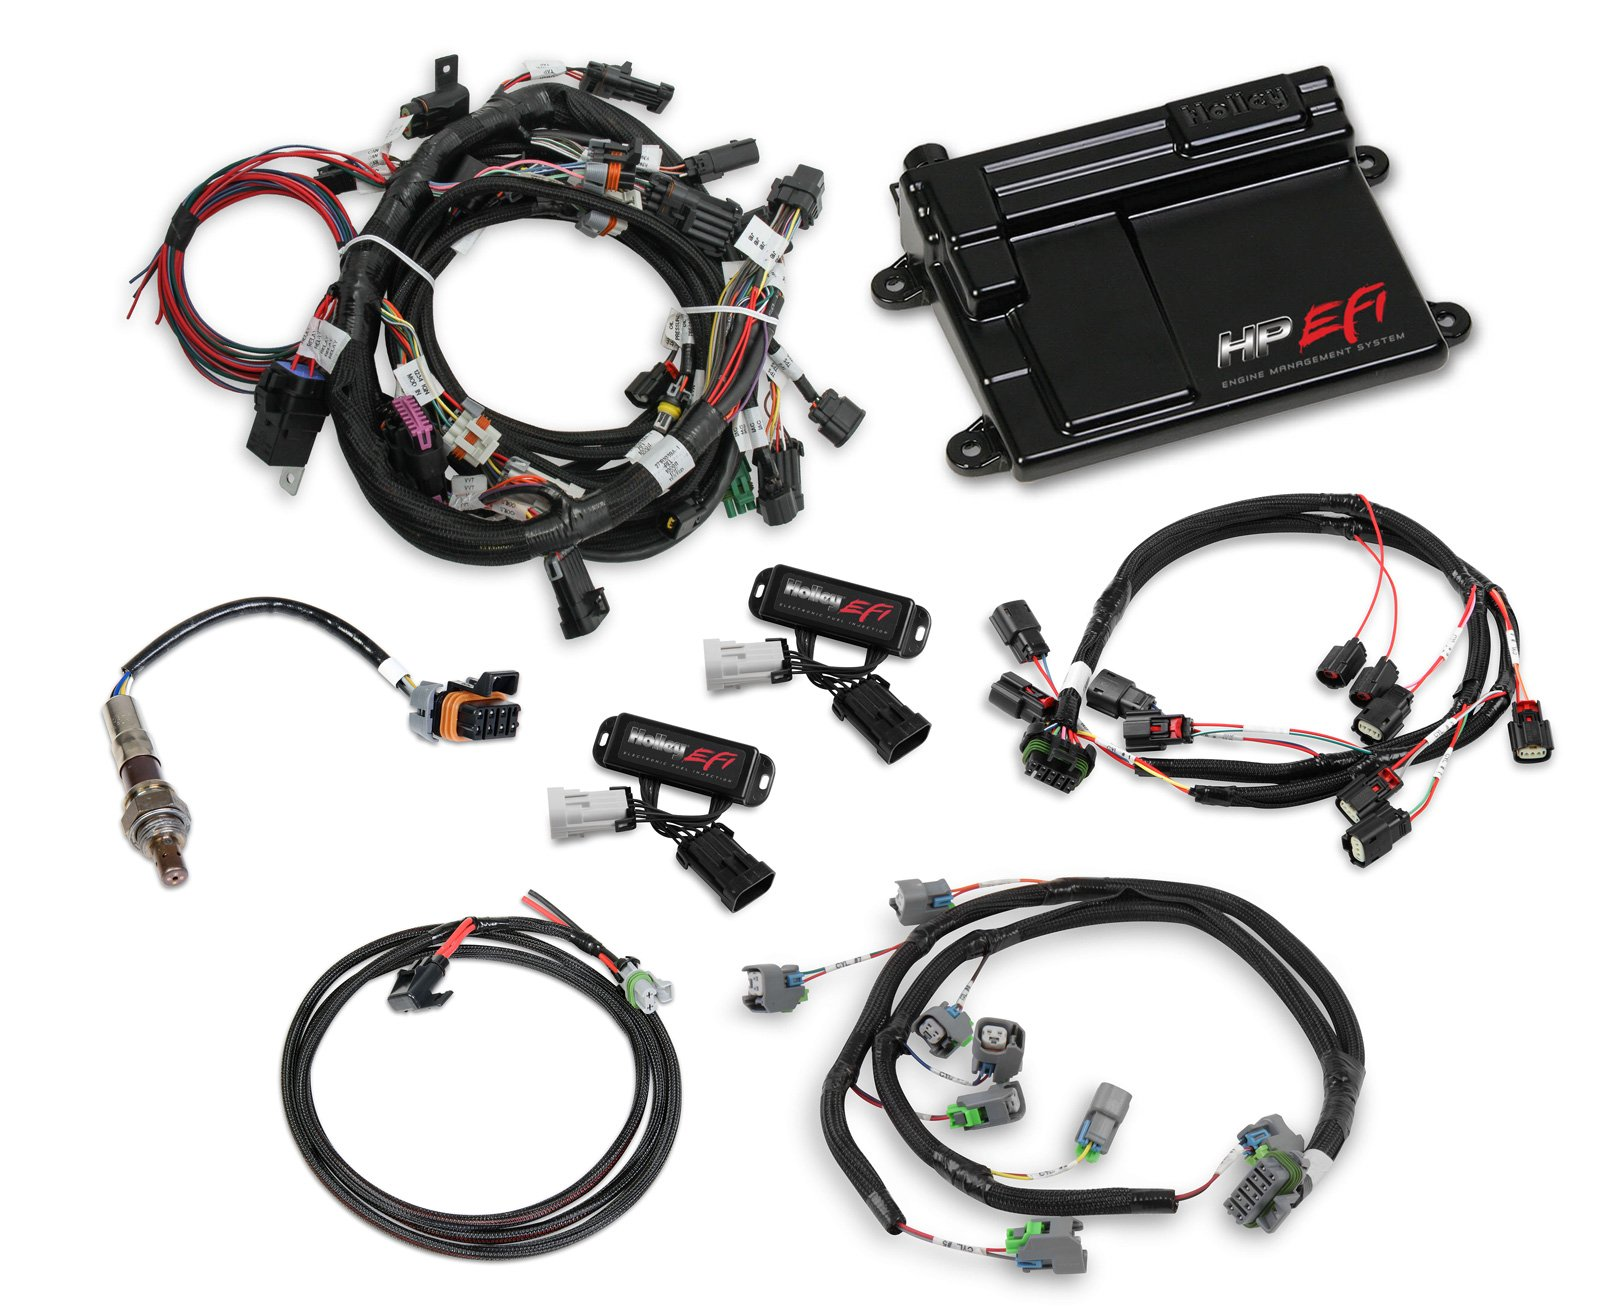 Ford Coyote Ti-VCT Capable HP EFI Kit, NTK O2